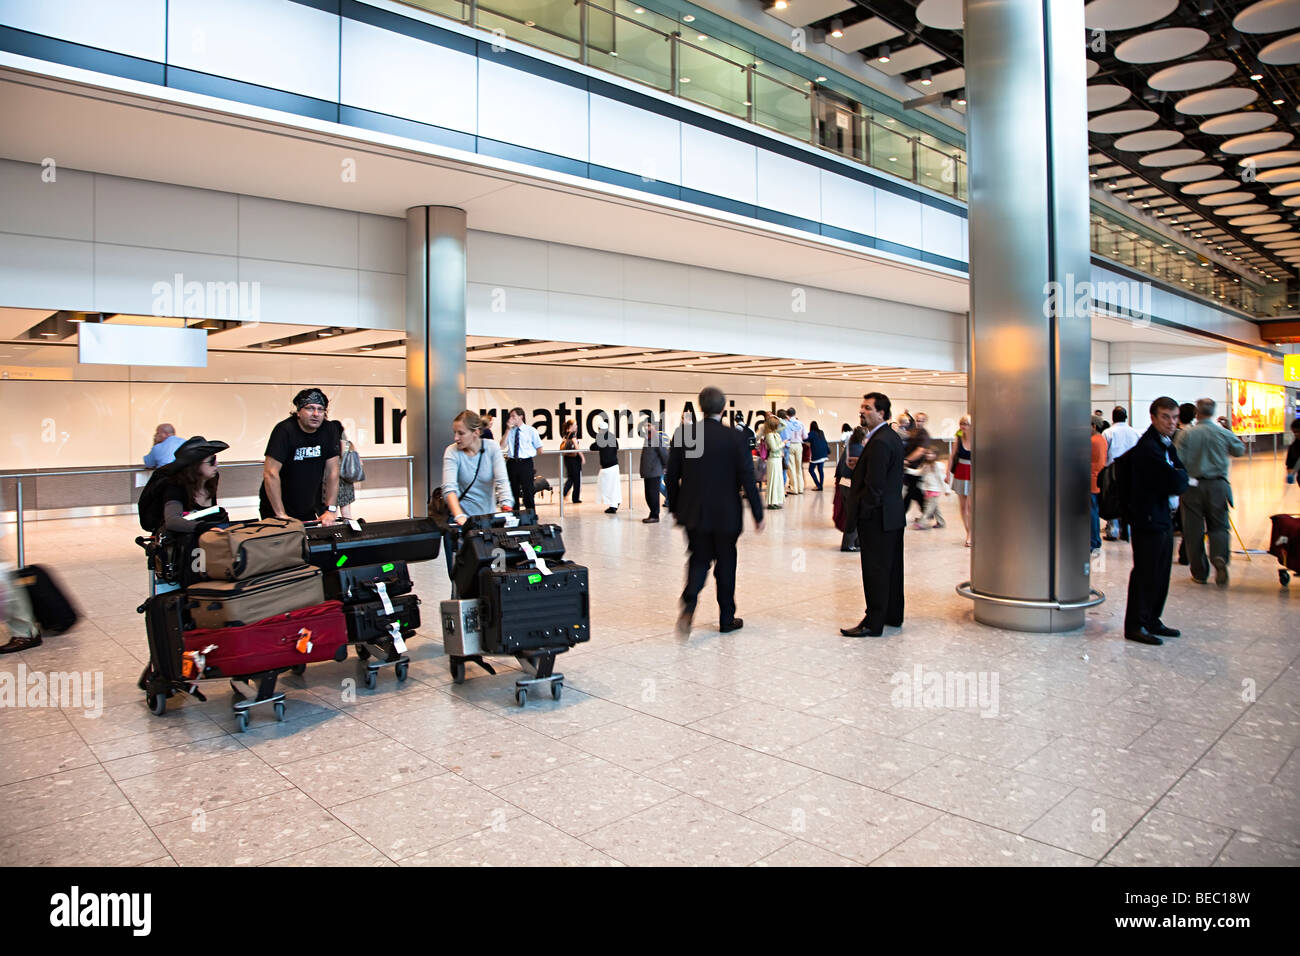 People at international arrivals Heathrow airport London England UK - Stock Image